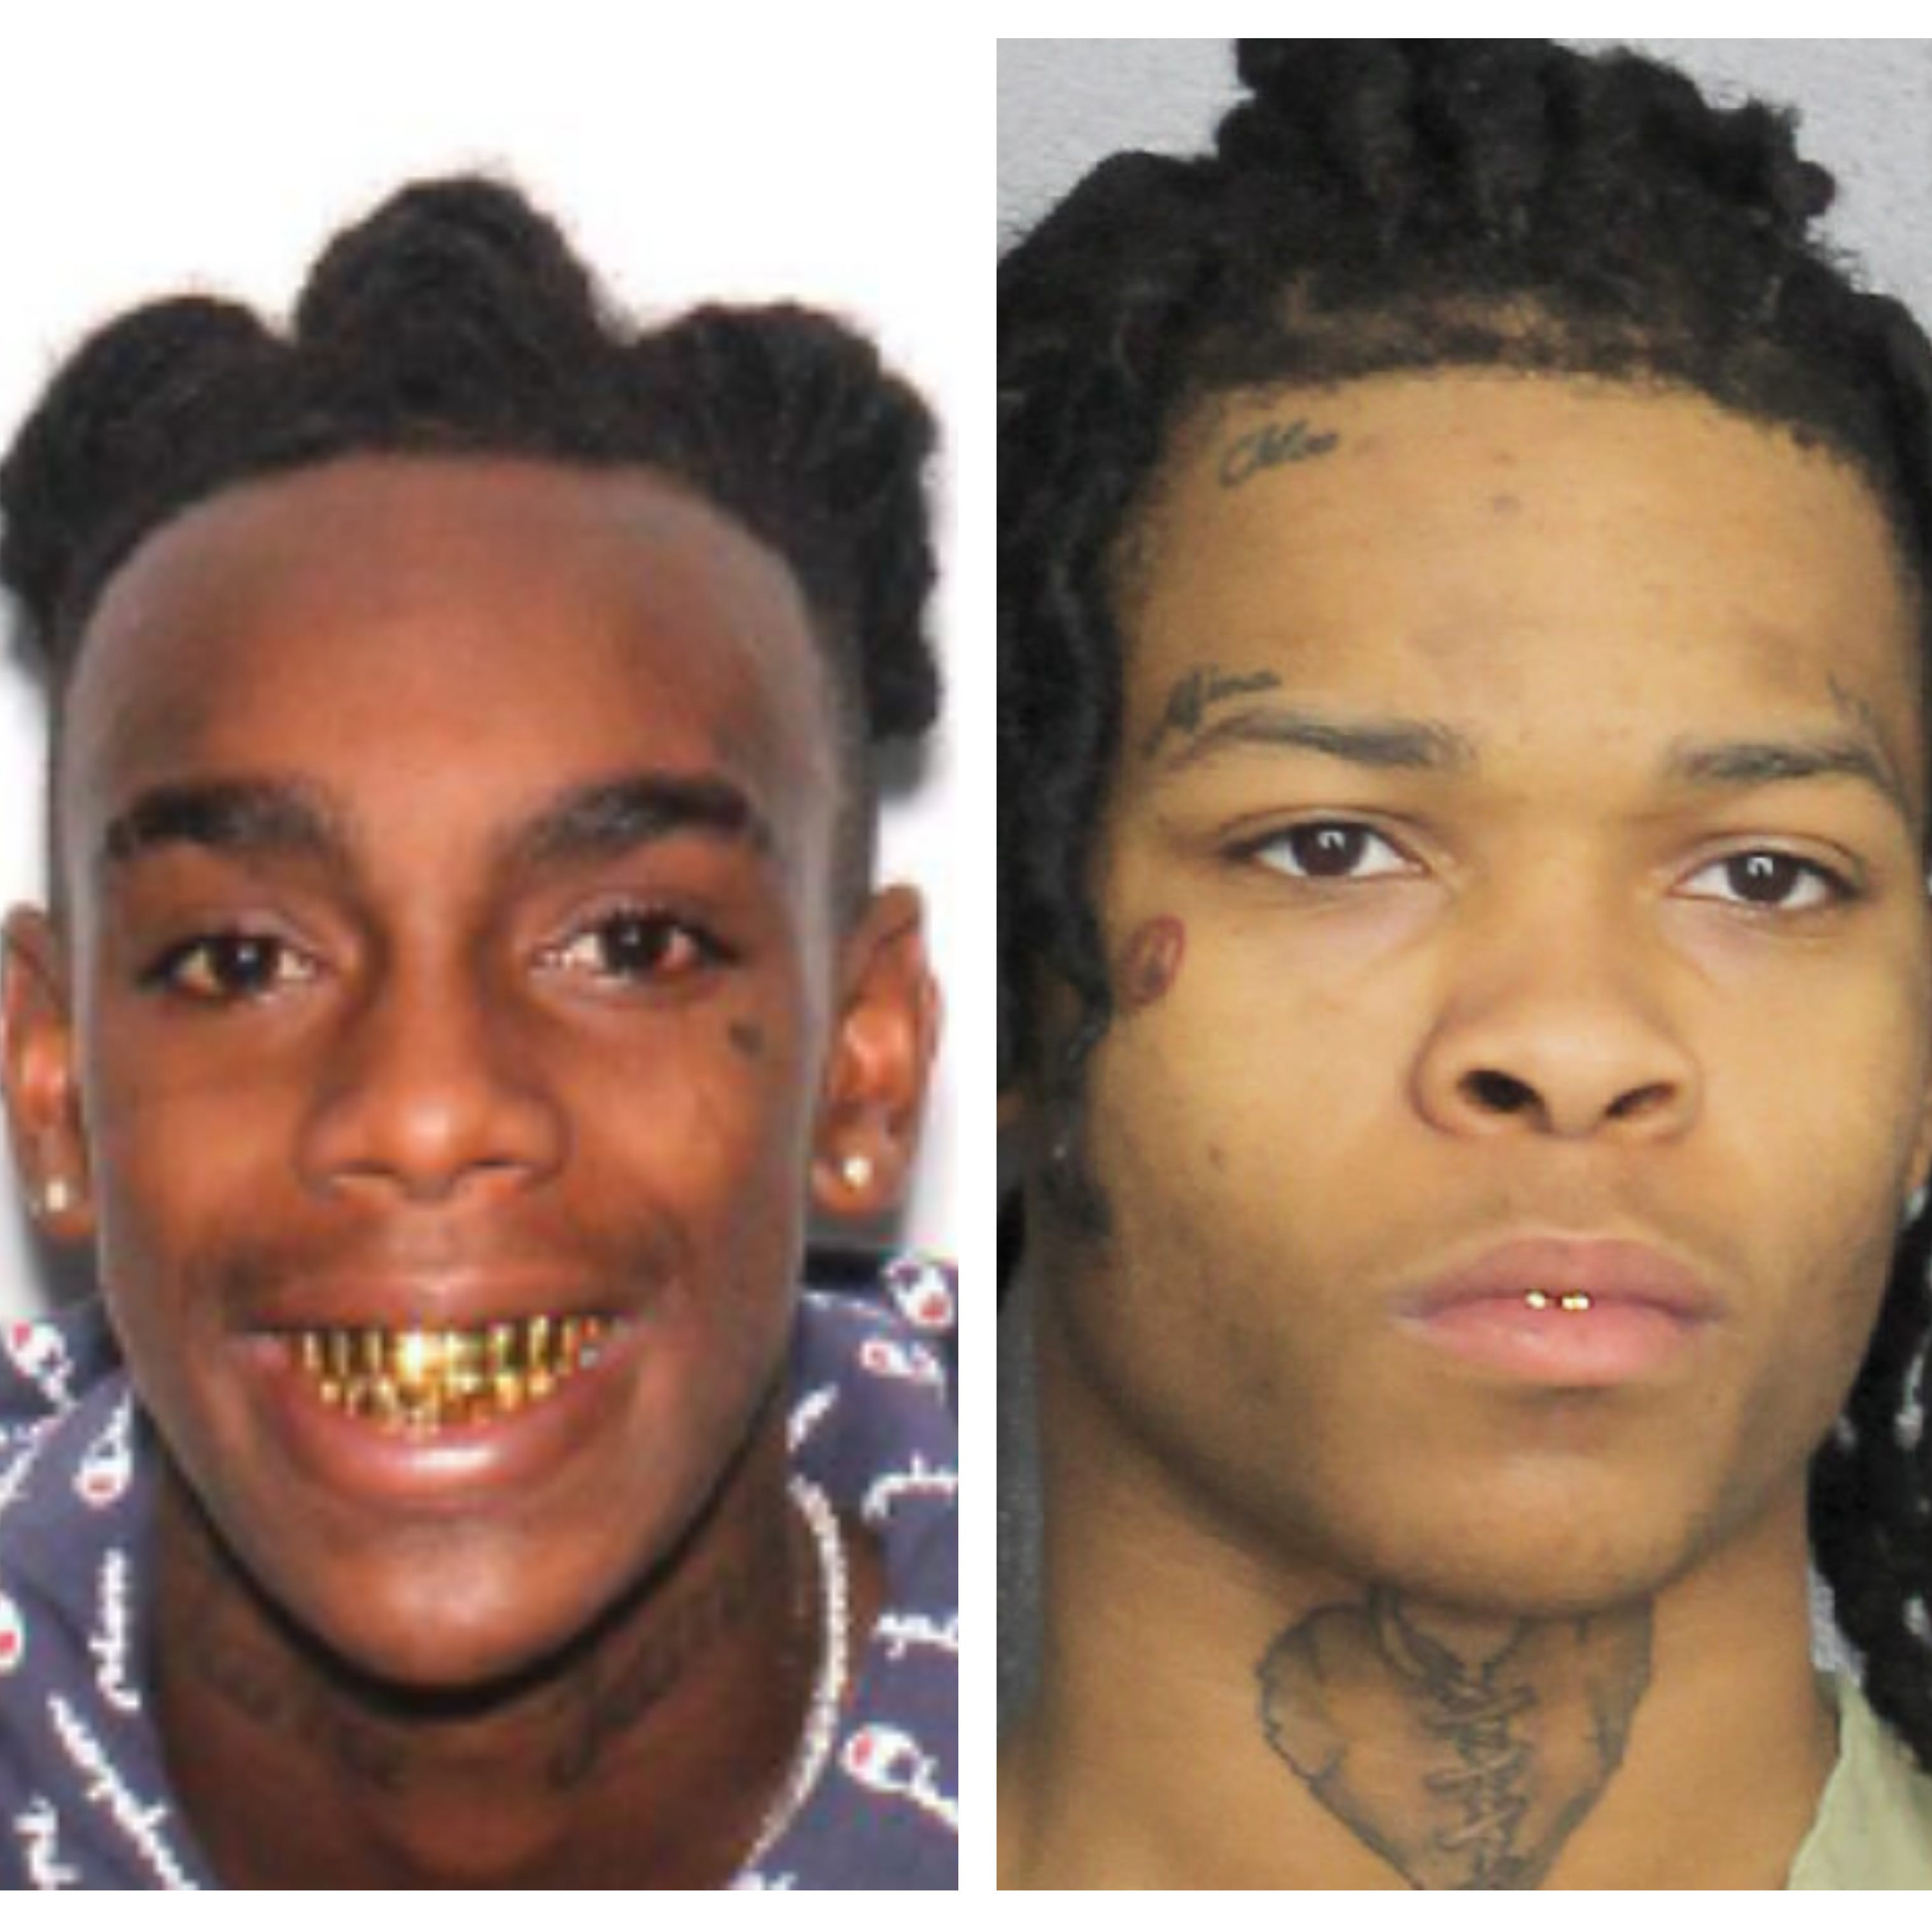 YNW Melly, Vero Beach grad arrested in South Florida, charged with Treasure Coast rappers' murder